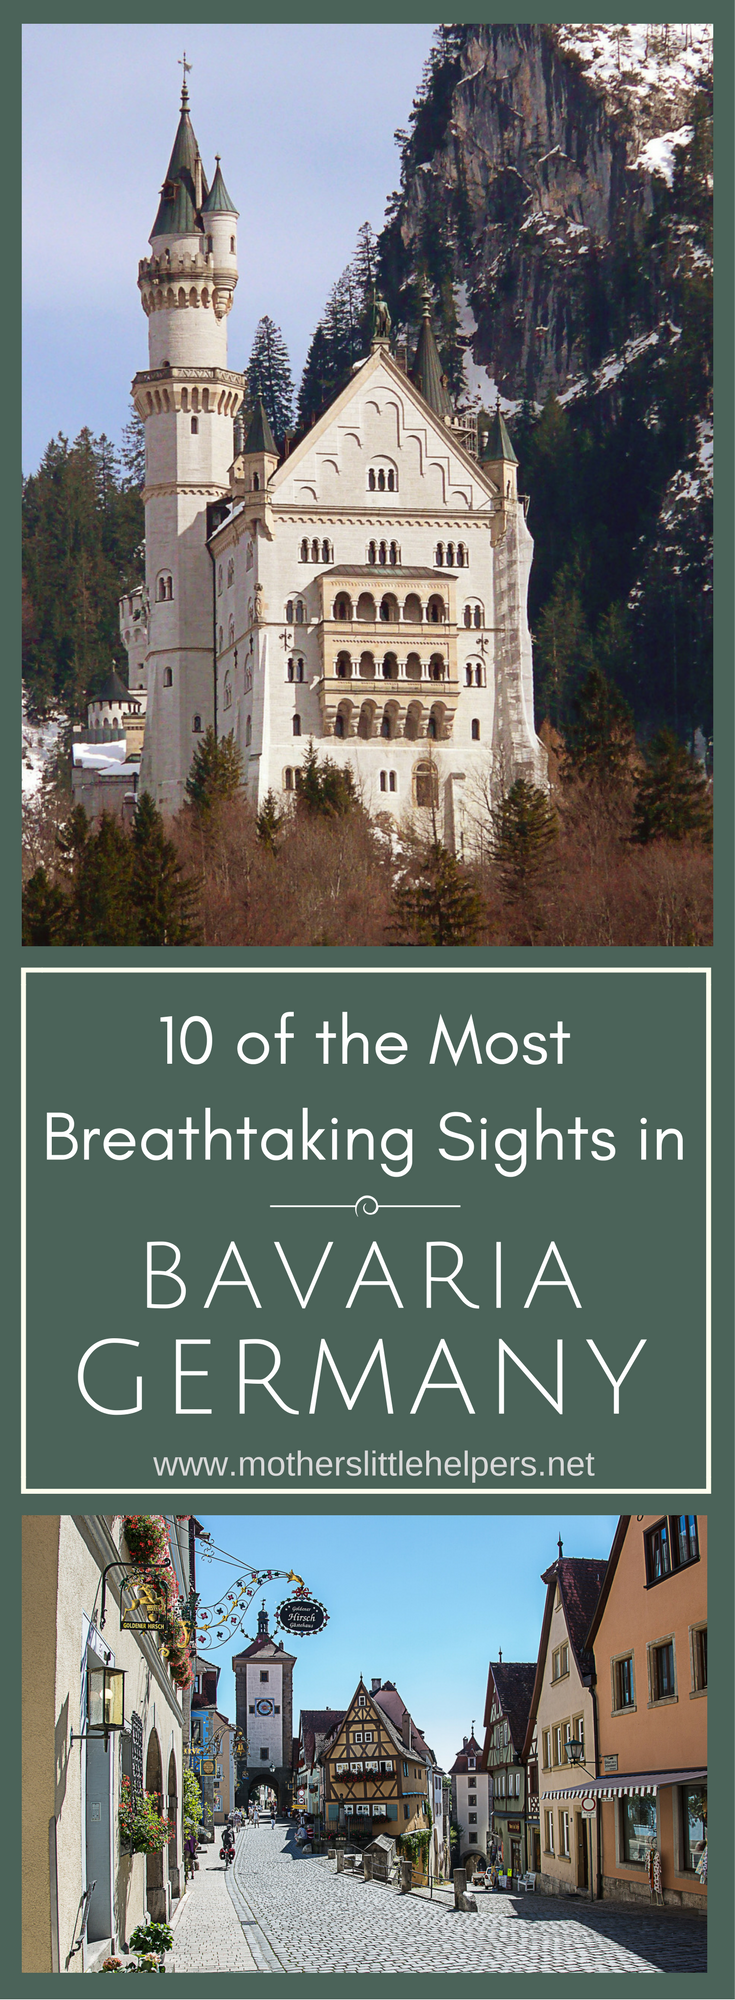 10 of the Most Breathtaking Sights in Bavaria, Germany | Travel Destinations in Germany | Central Europe | Germany | European Travel Destinations | German Castles | The Alps